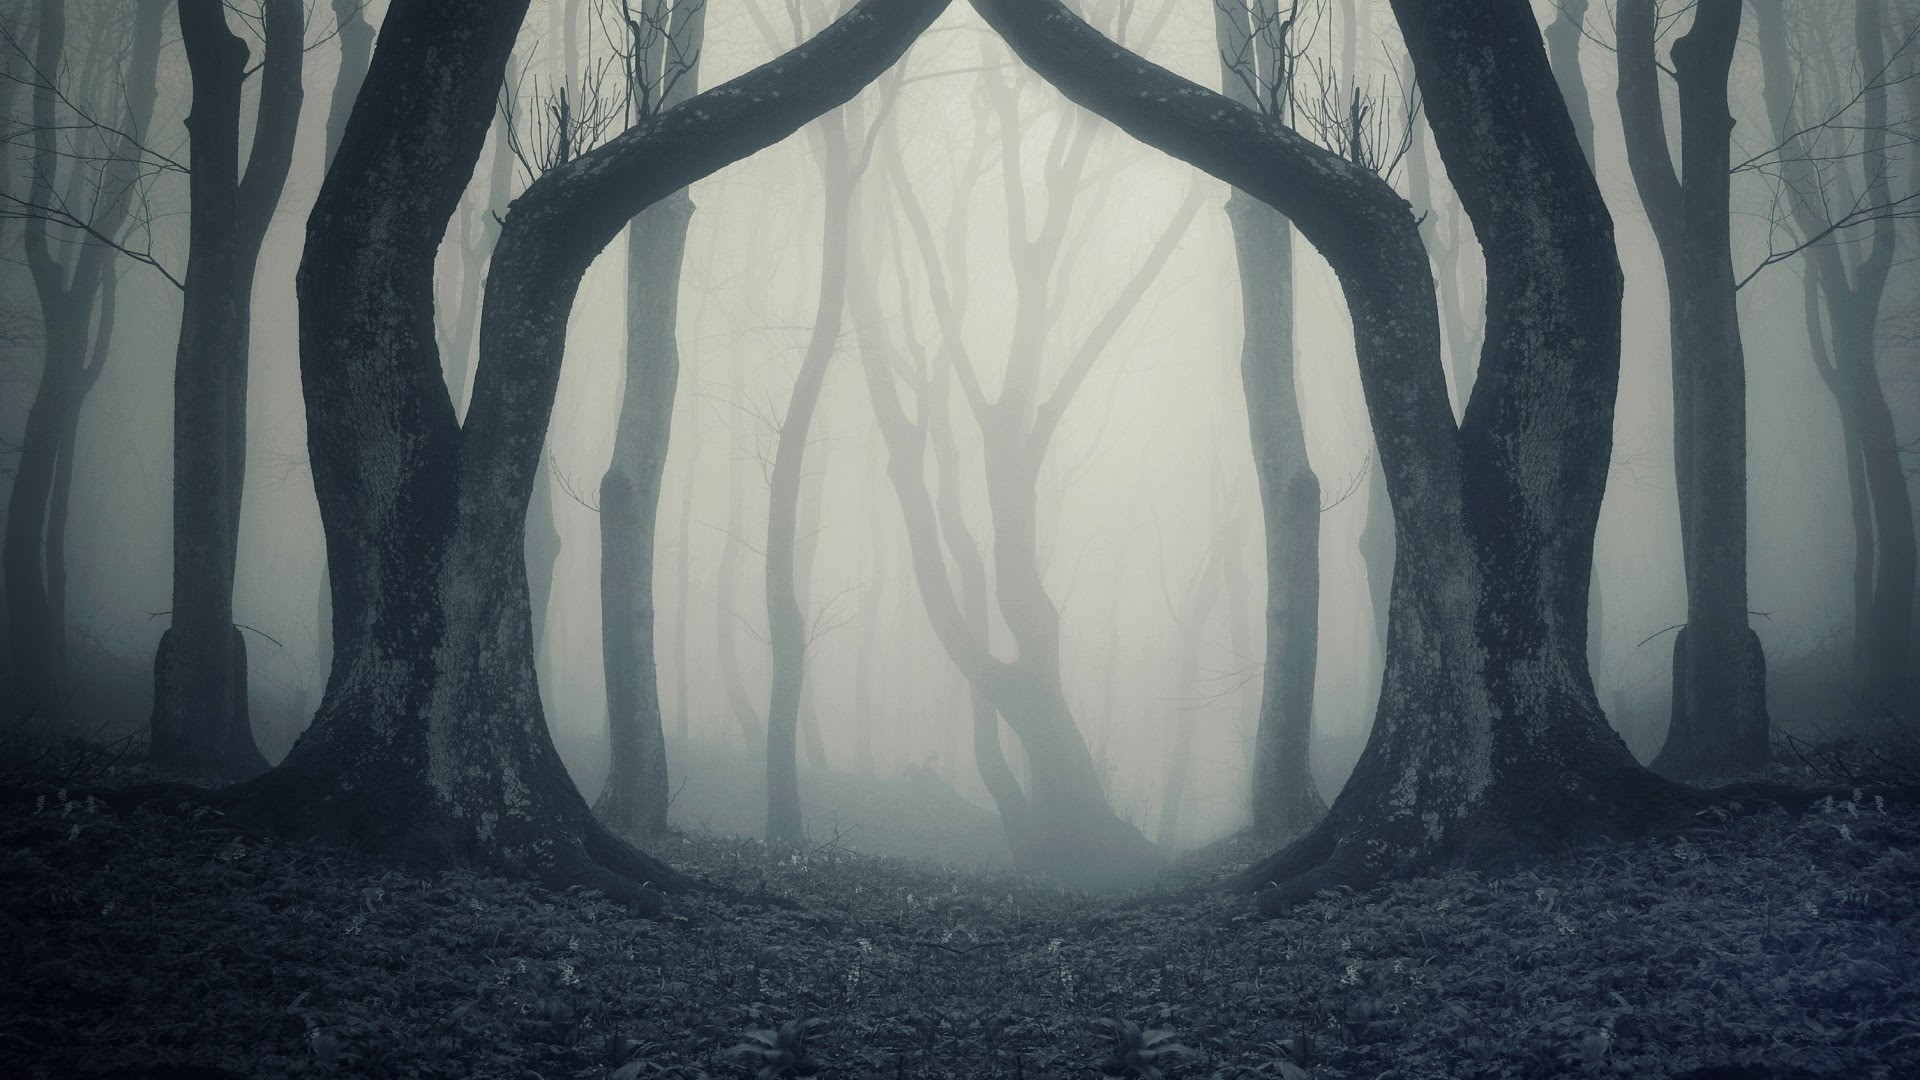 Creepy background pictures for Wallpaper for a